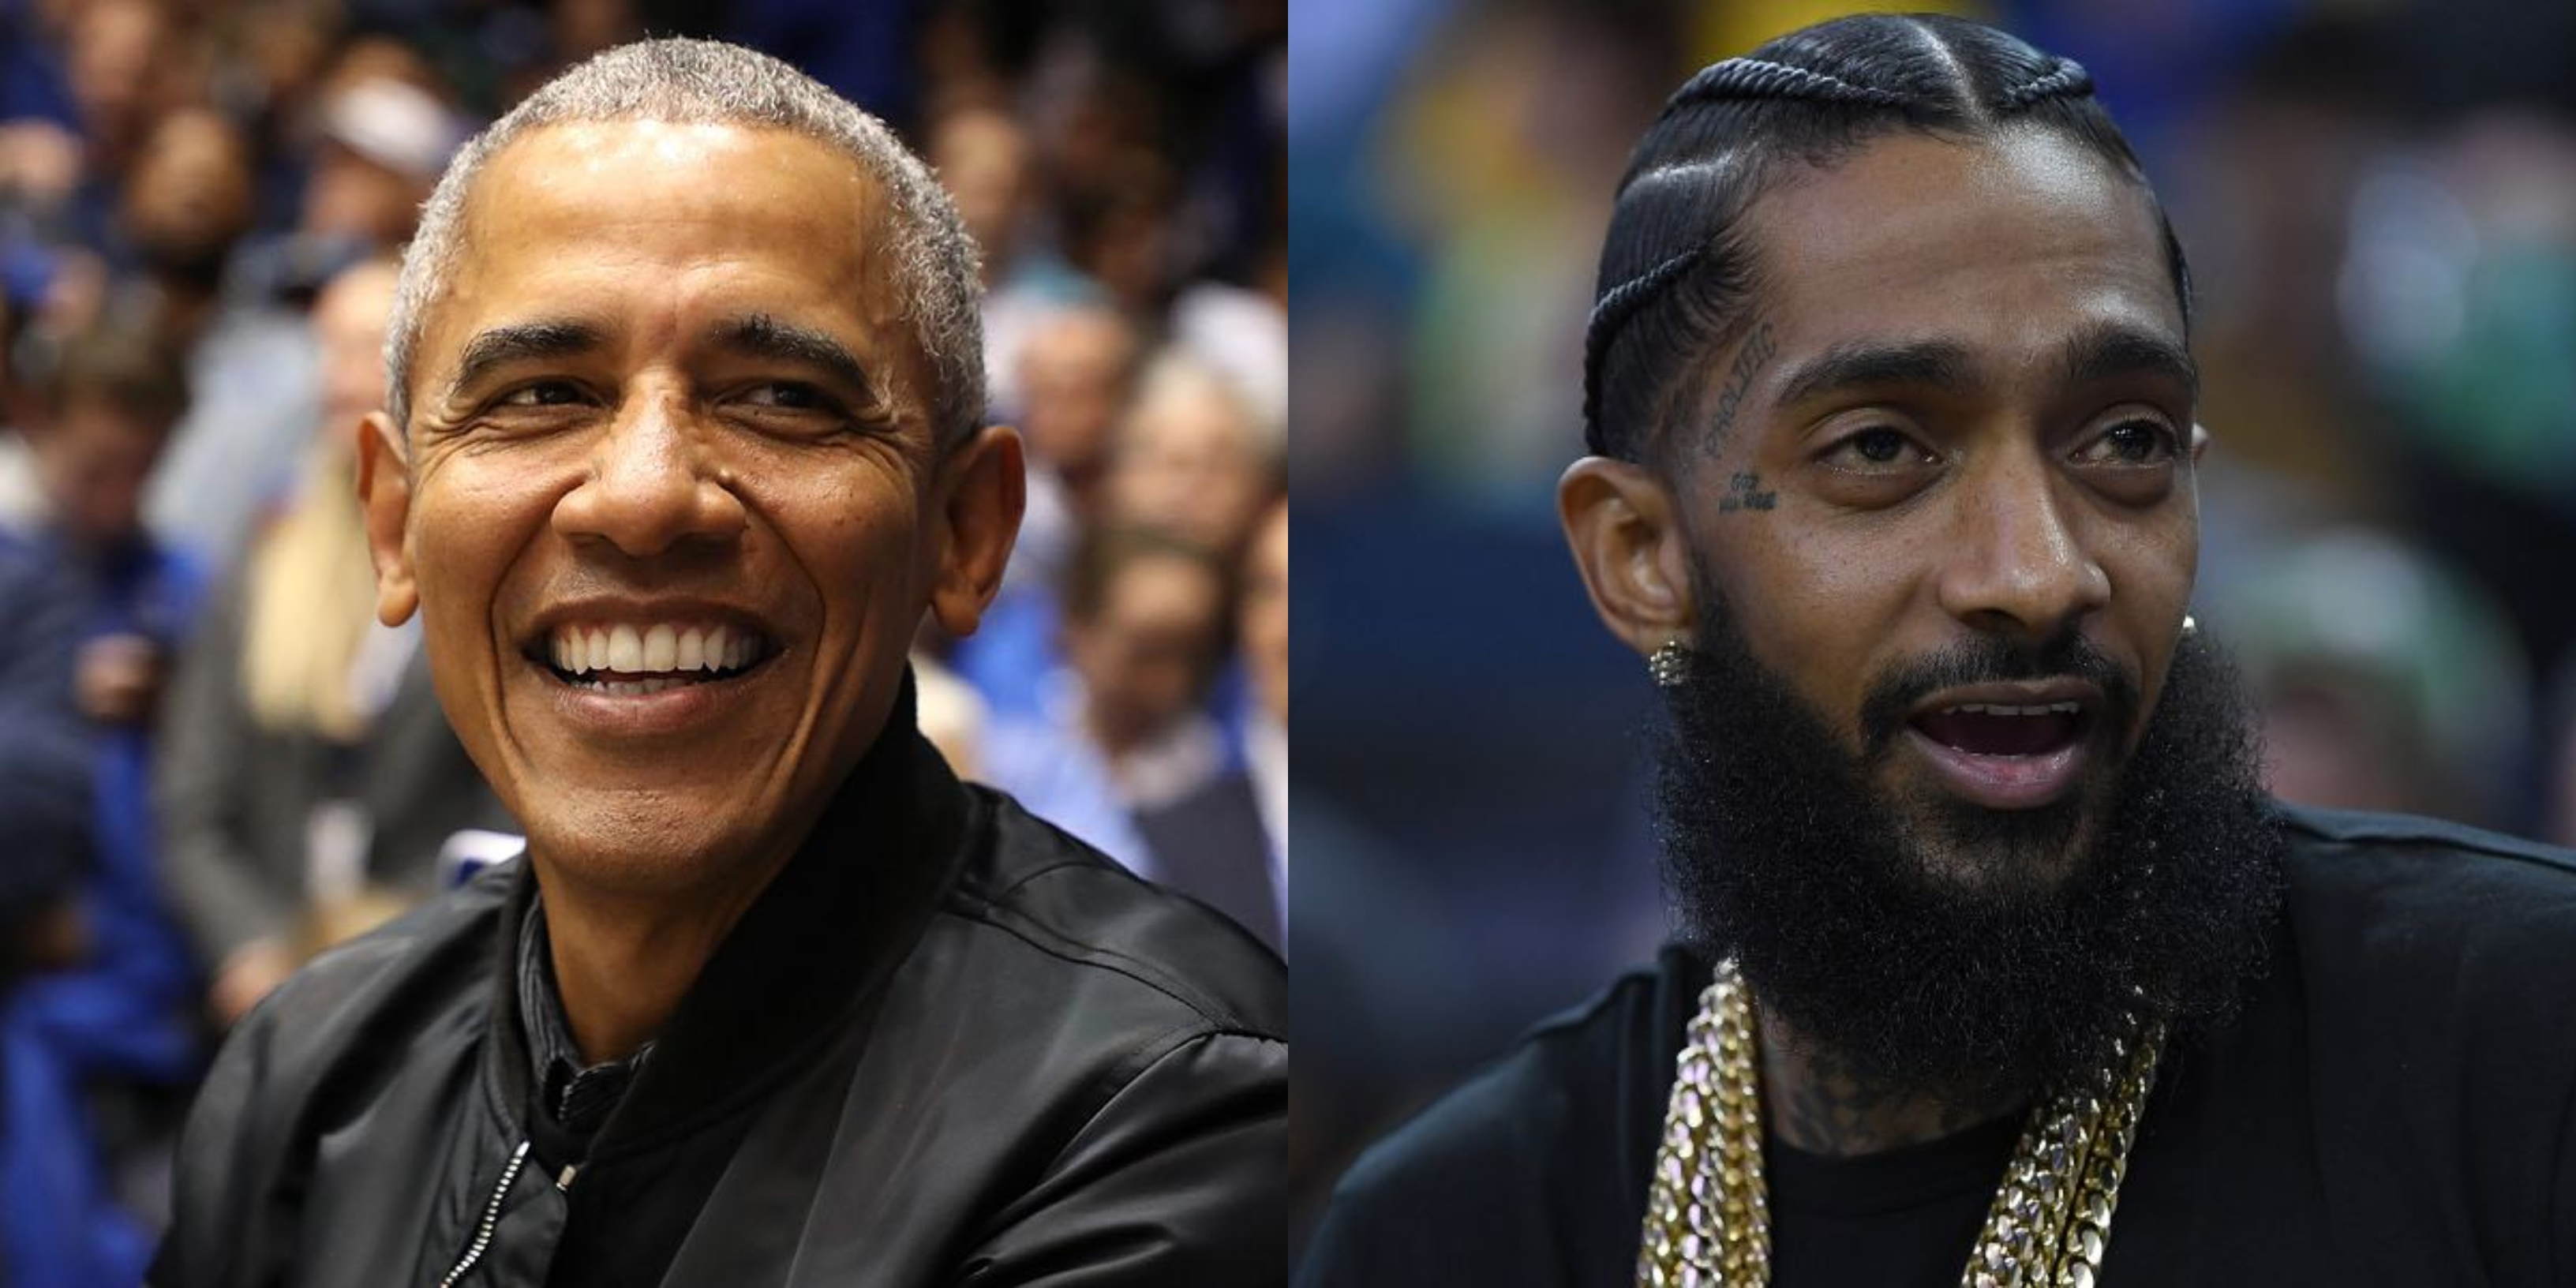 Karen Civil Reads Letter From Barack Obama at Nipsey Hussle's Memorial